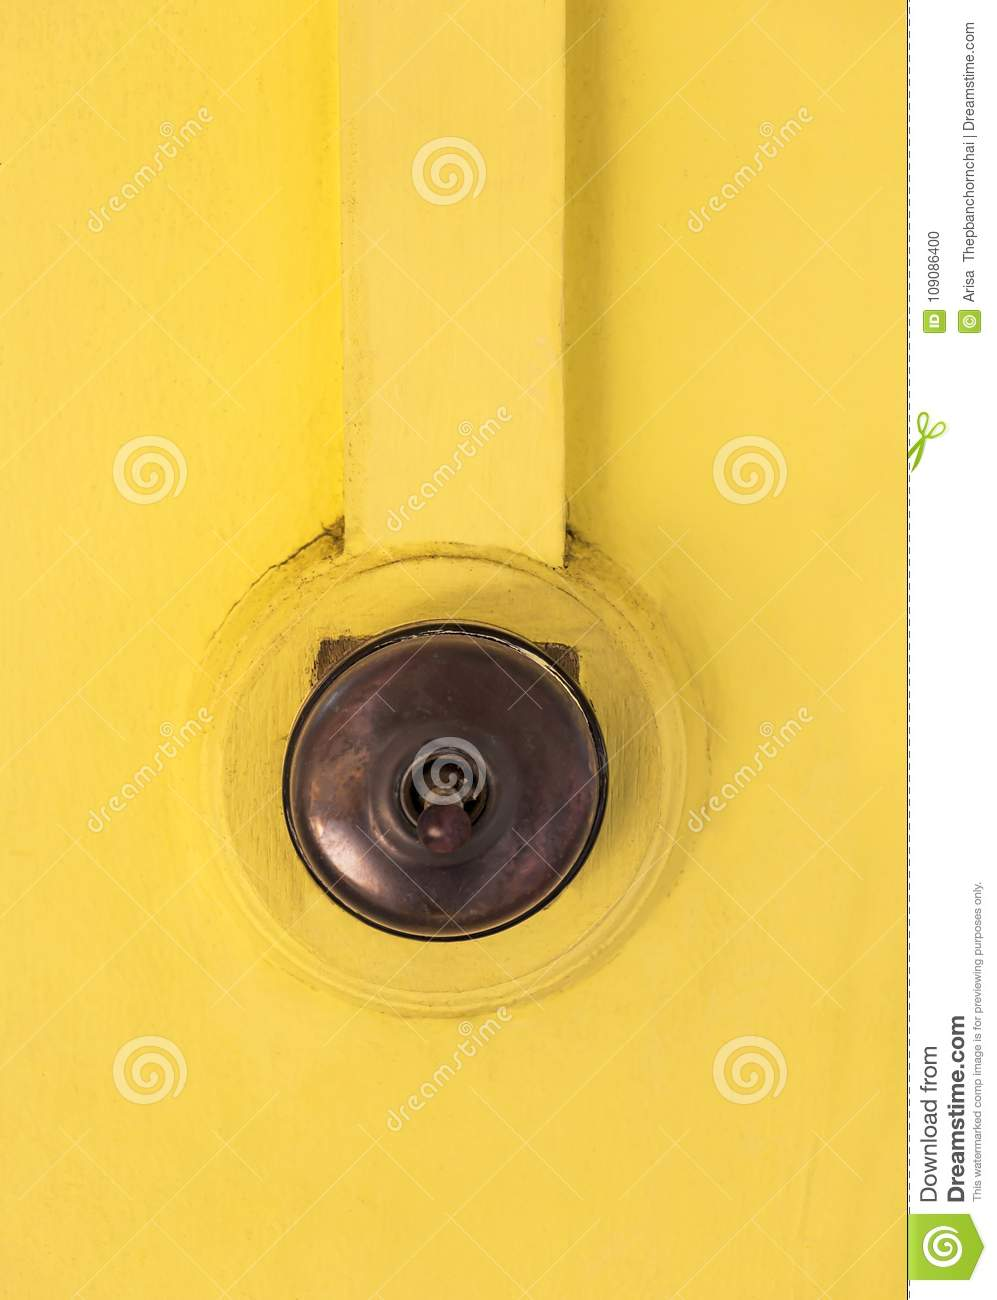 Antique Light Switch On The Old Wooden Wall Yellow Color Isolate